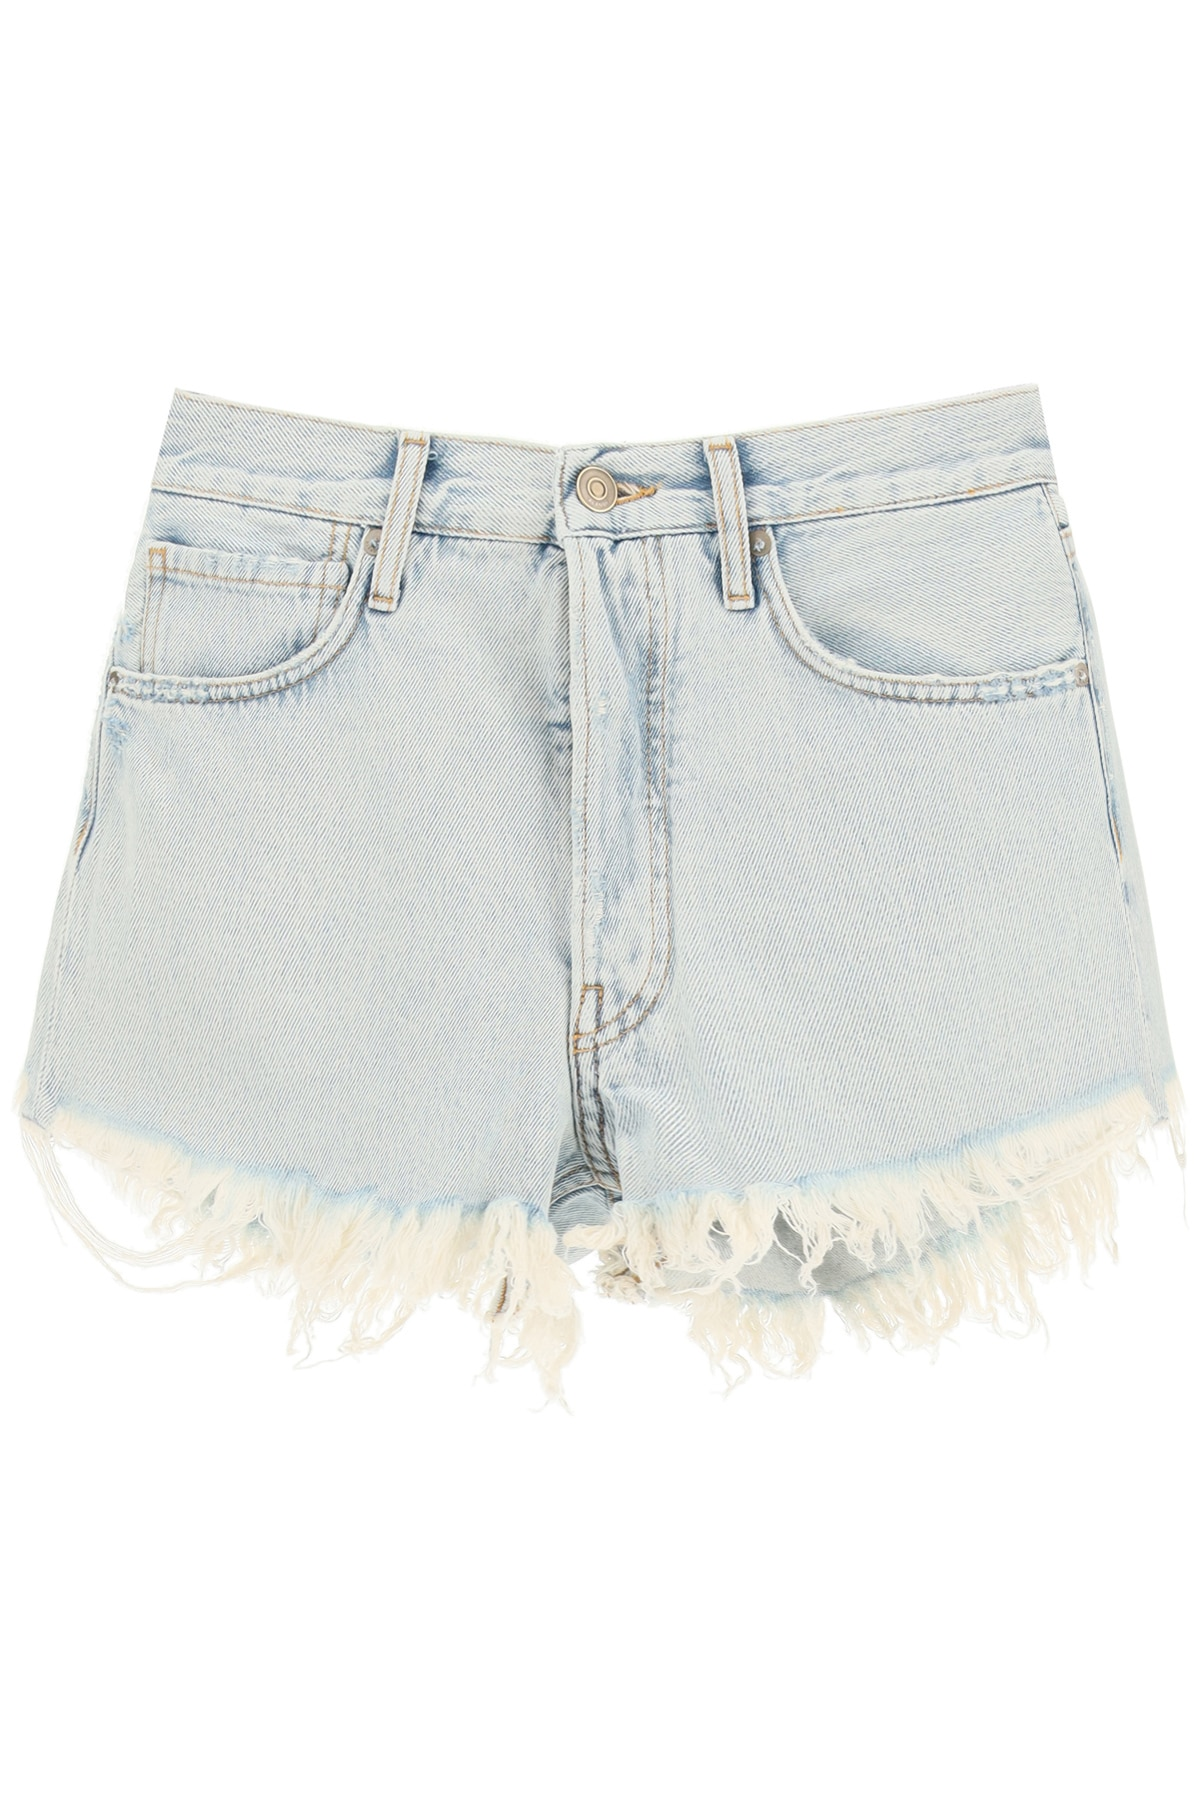 ALANUI SAN PEDRO DENIM SHORTS 27 Light blue Cotton, Denim